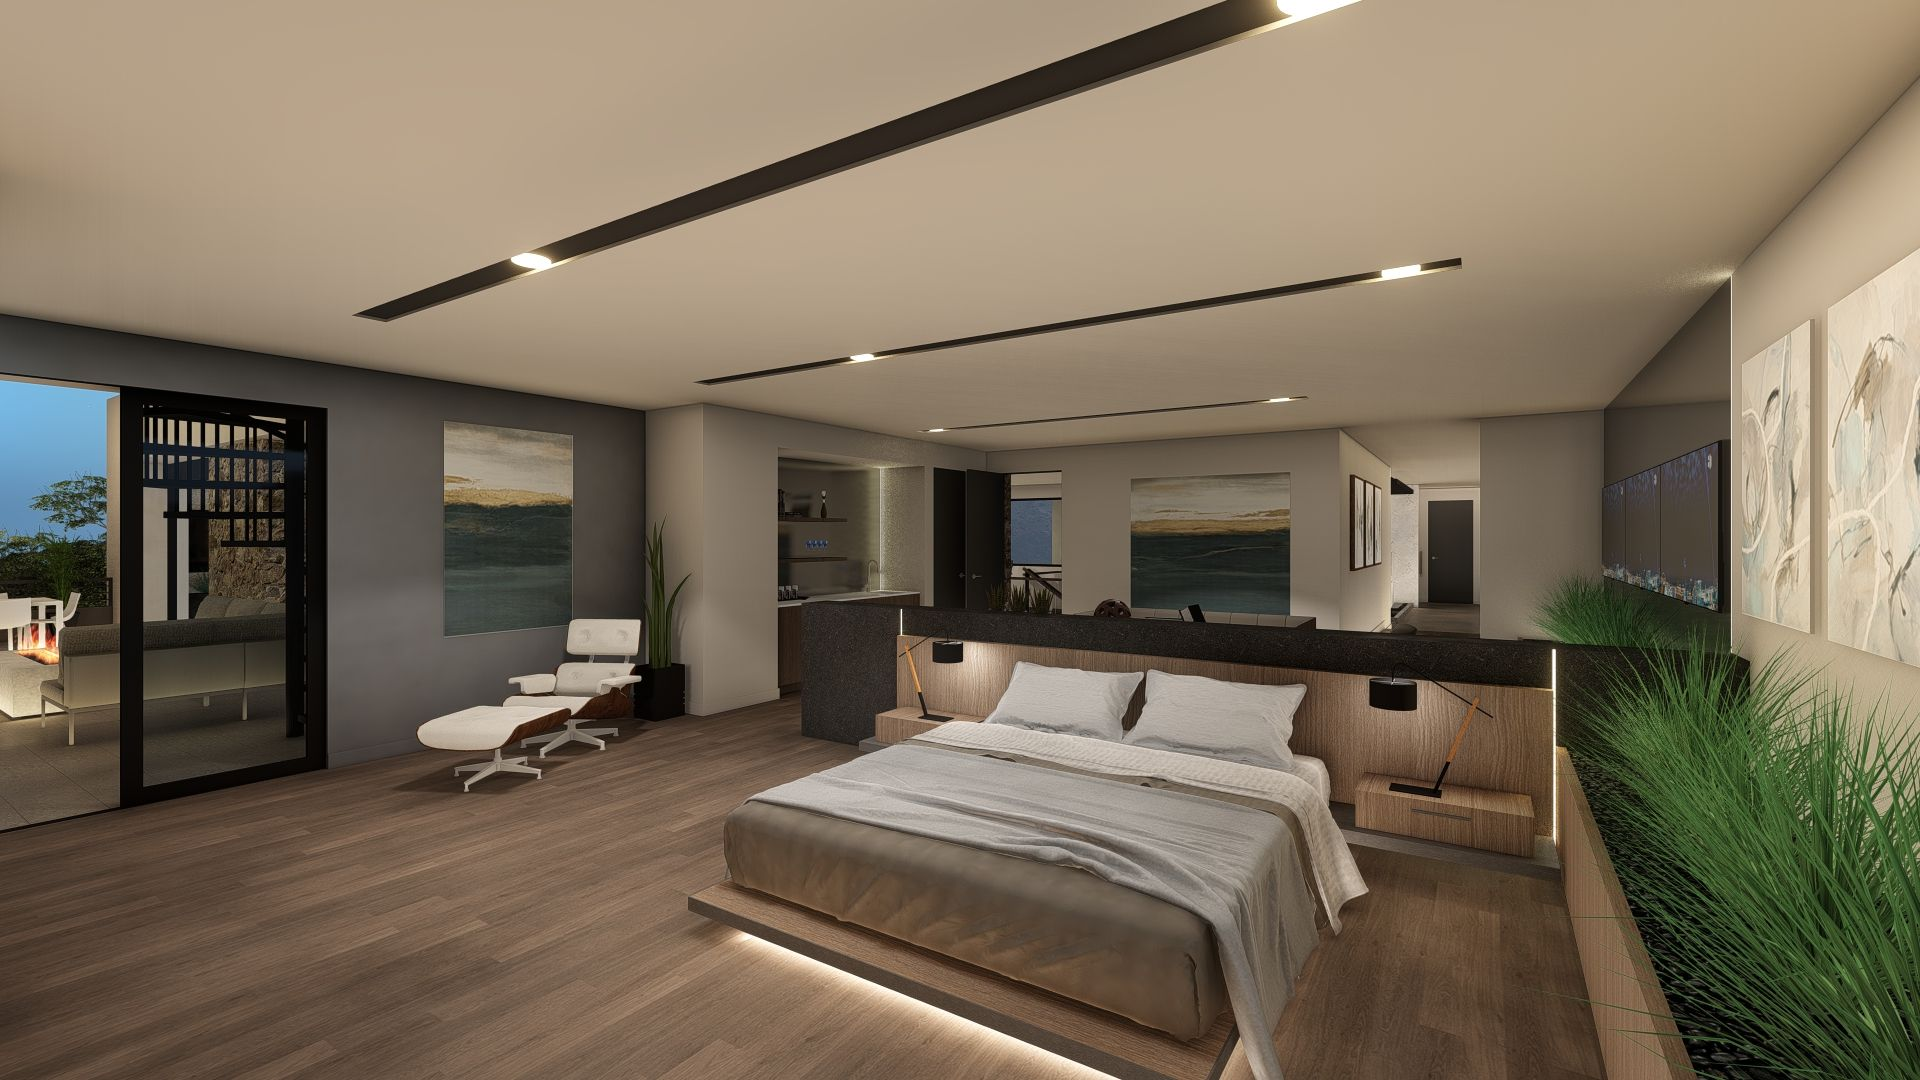 Bedroom featured in the Vision By Blue Heron in Las Vegas, NV